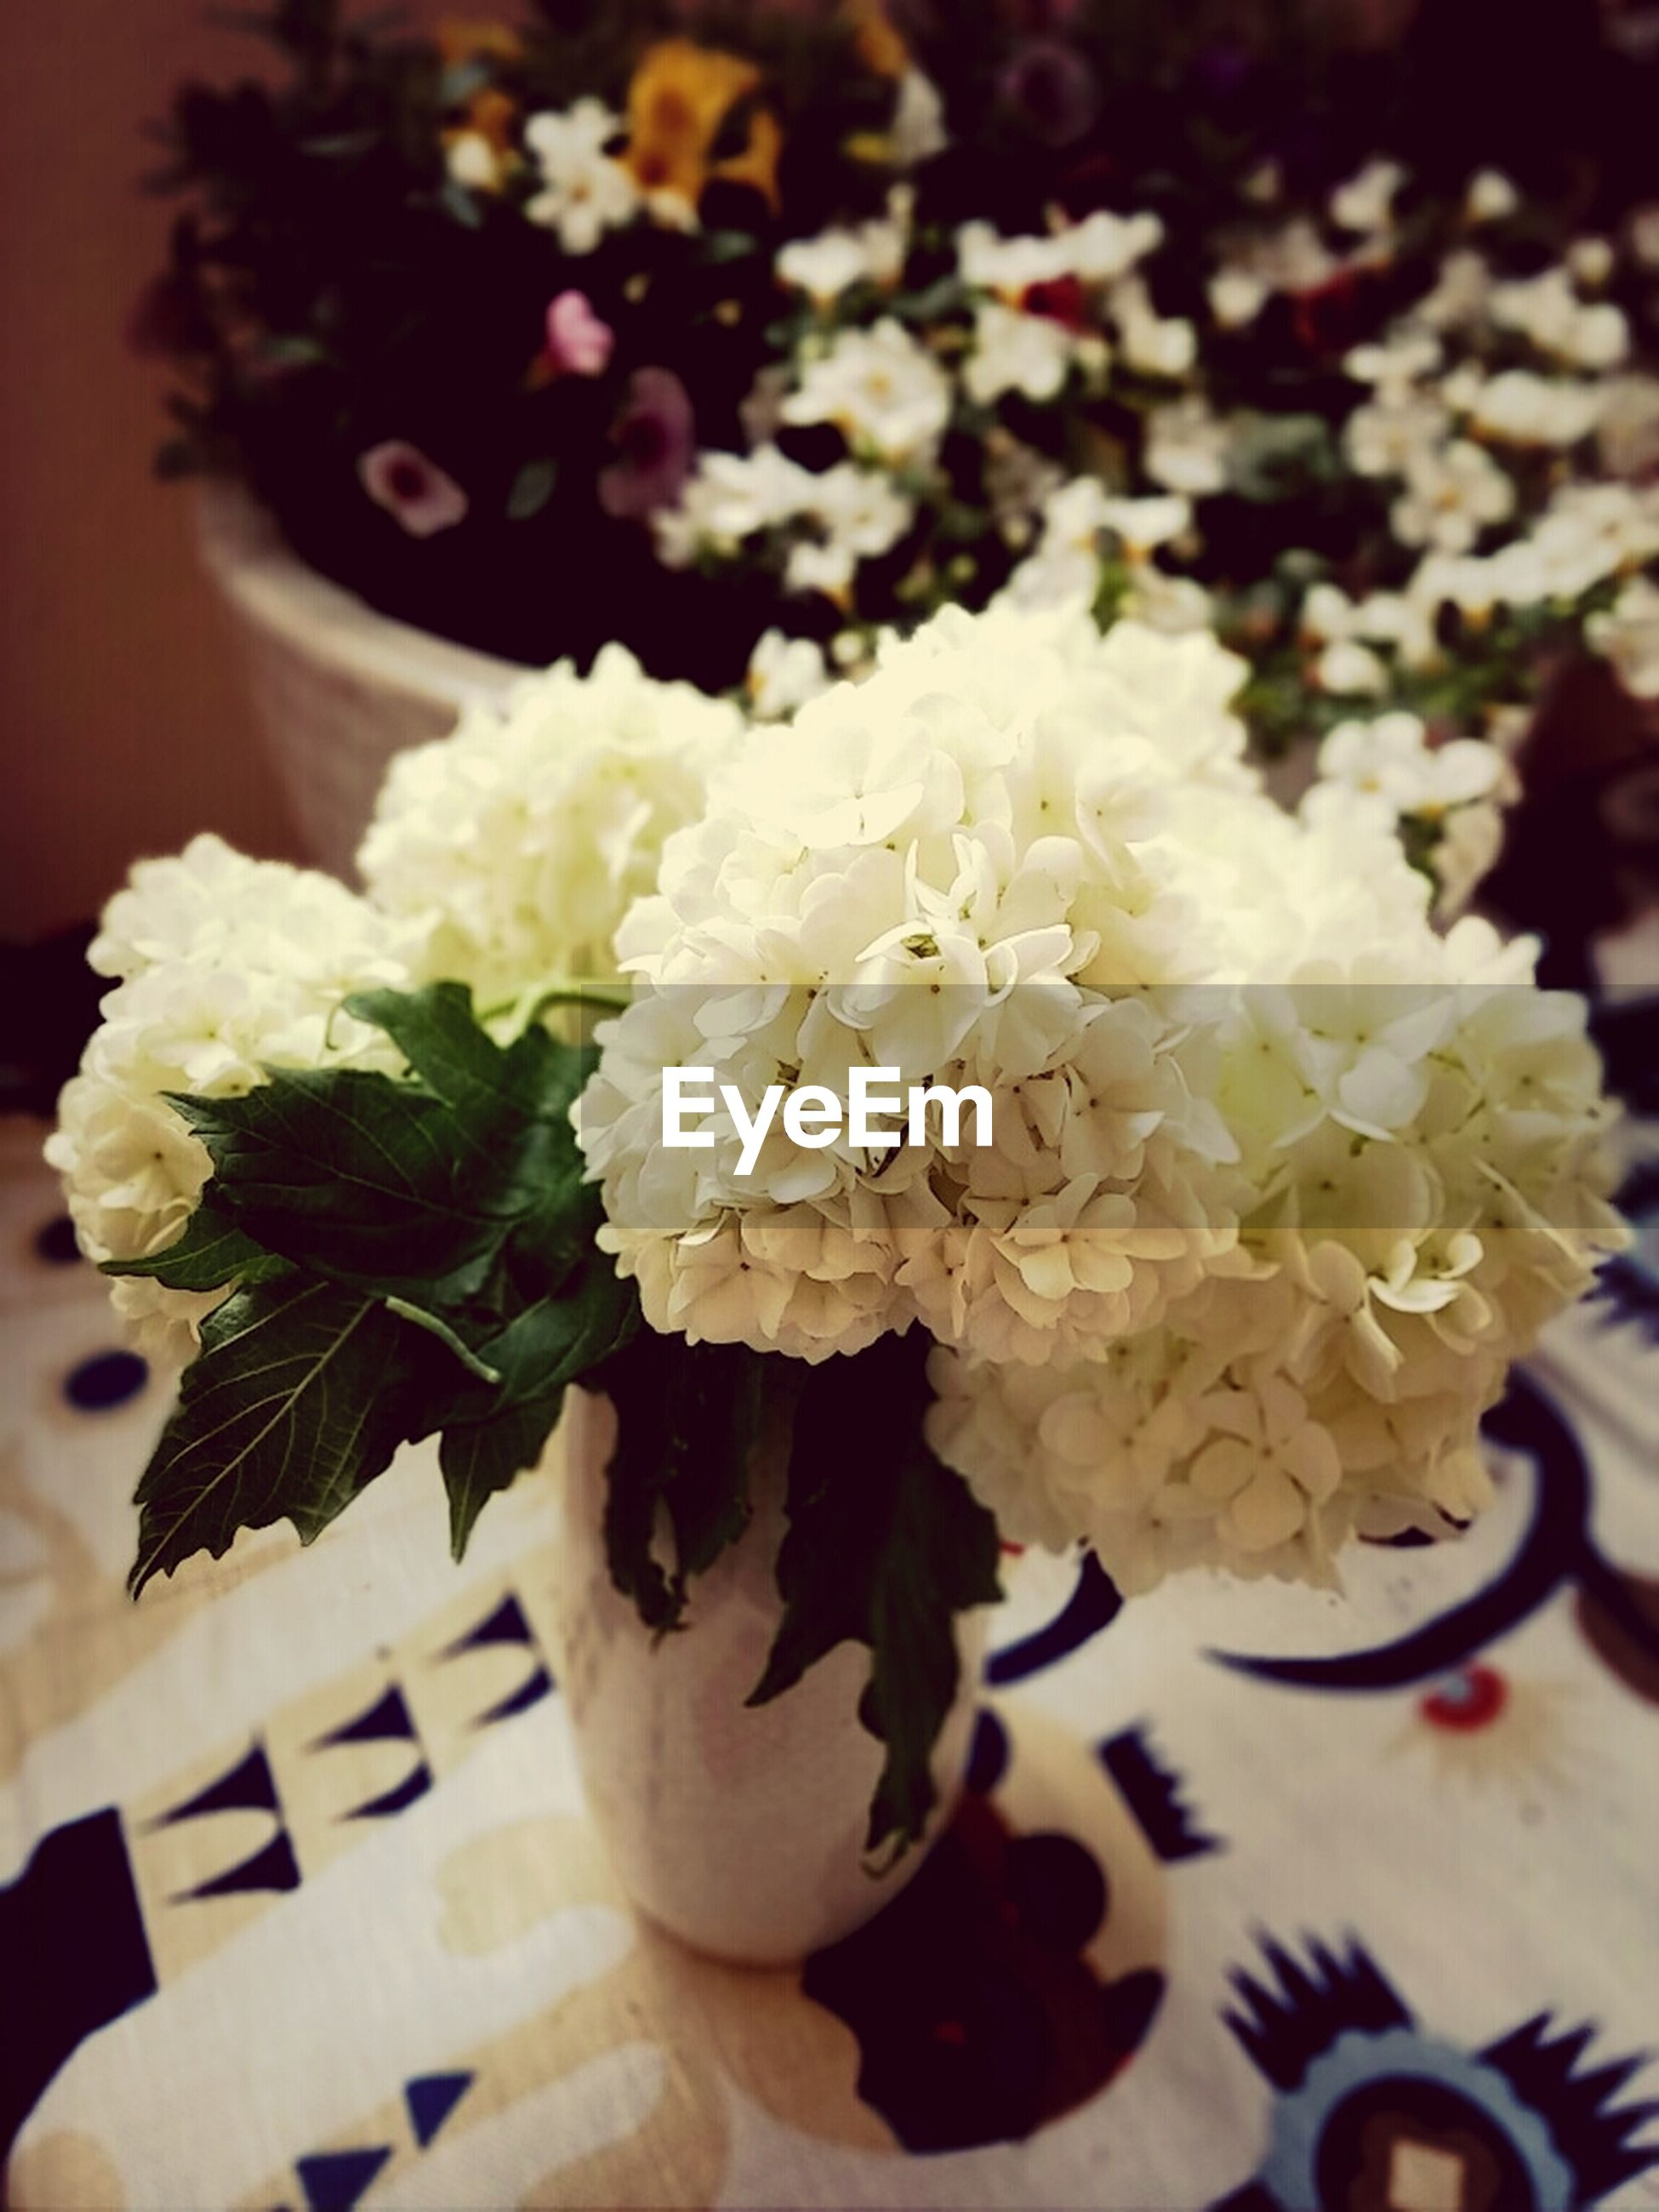 flower, freshness, indoors, close-up, petal, white color, focus on foreground, table, fragility, still life, high angle view, flower head, sweet food, bunch of flowers, vase, no people, bouquet, rose - flower, selective focus, decoration